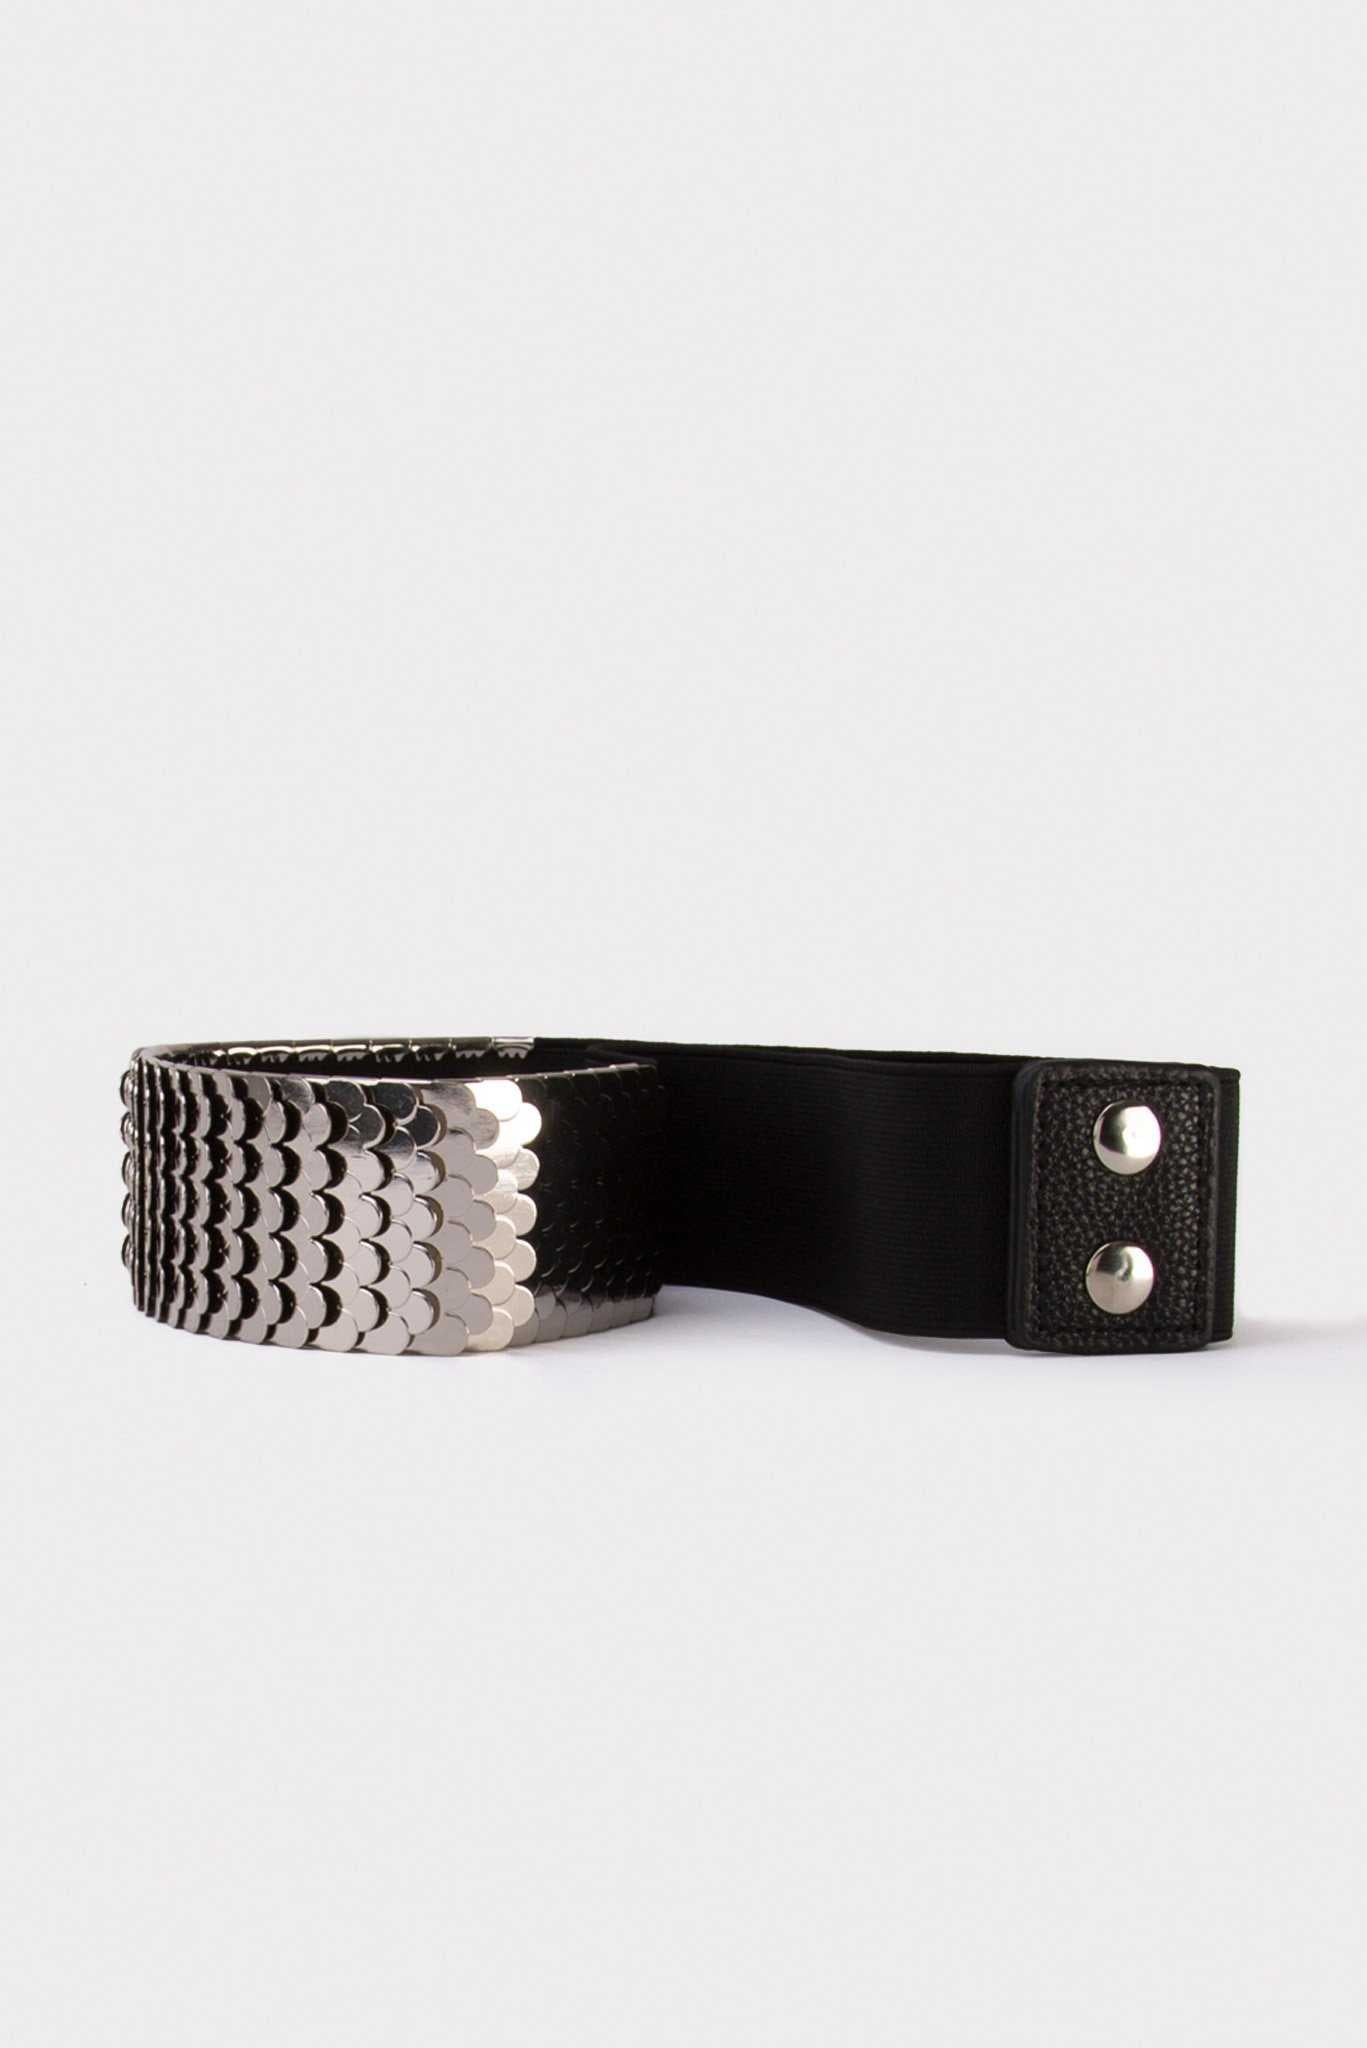 Metal Waist Belt Silver | Raw Orange